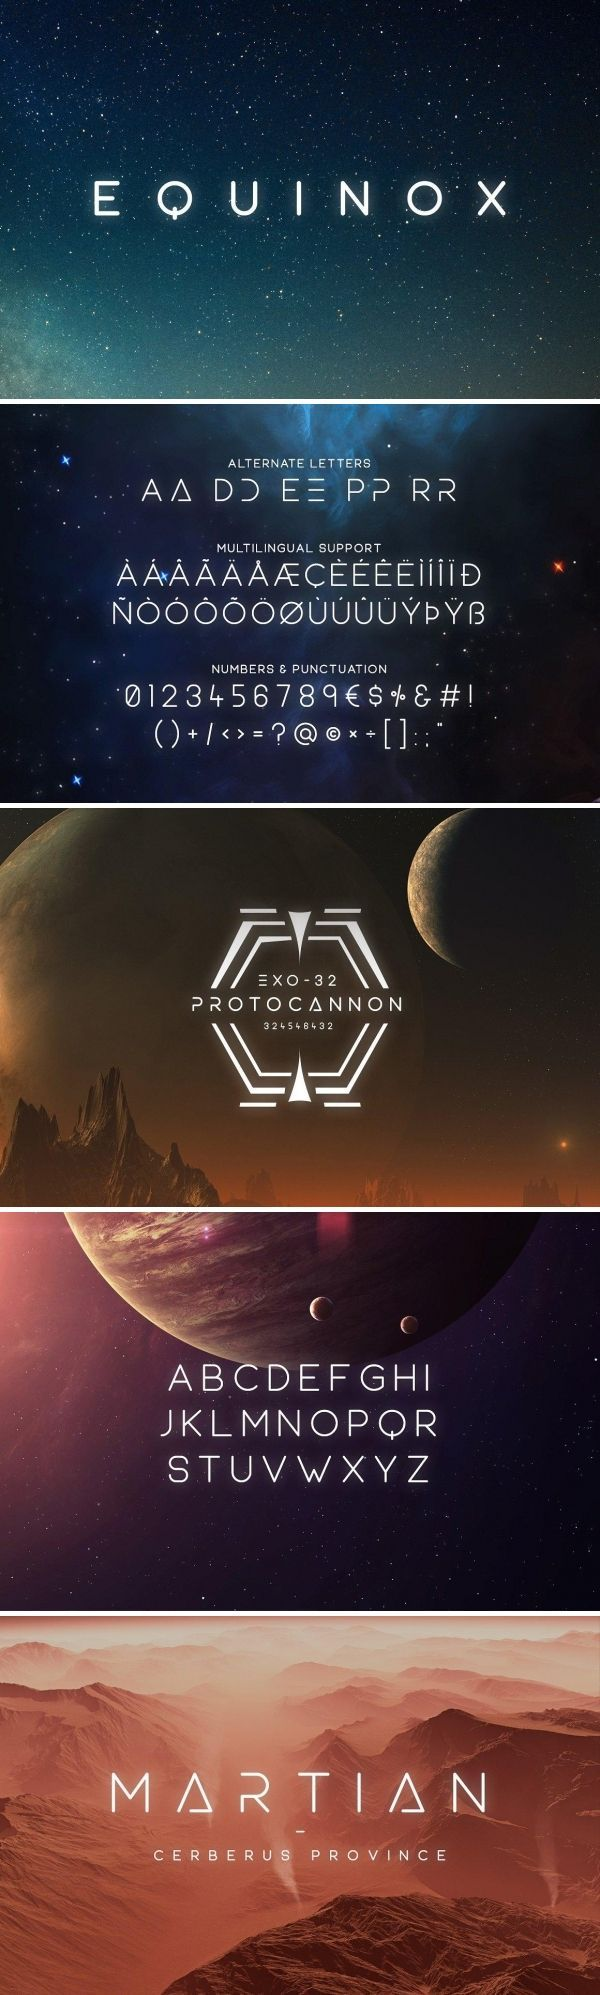 Equinox is a modern, minimal and clean font family with uppercase multilingual letters, numbers, punctuation and alternate letters. It's not as futuristic as my other sci-fi fonts but it's much more versatile and can be used for non sci-fi purposes as well. @creativemarket